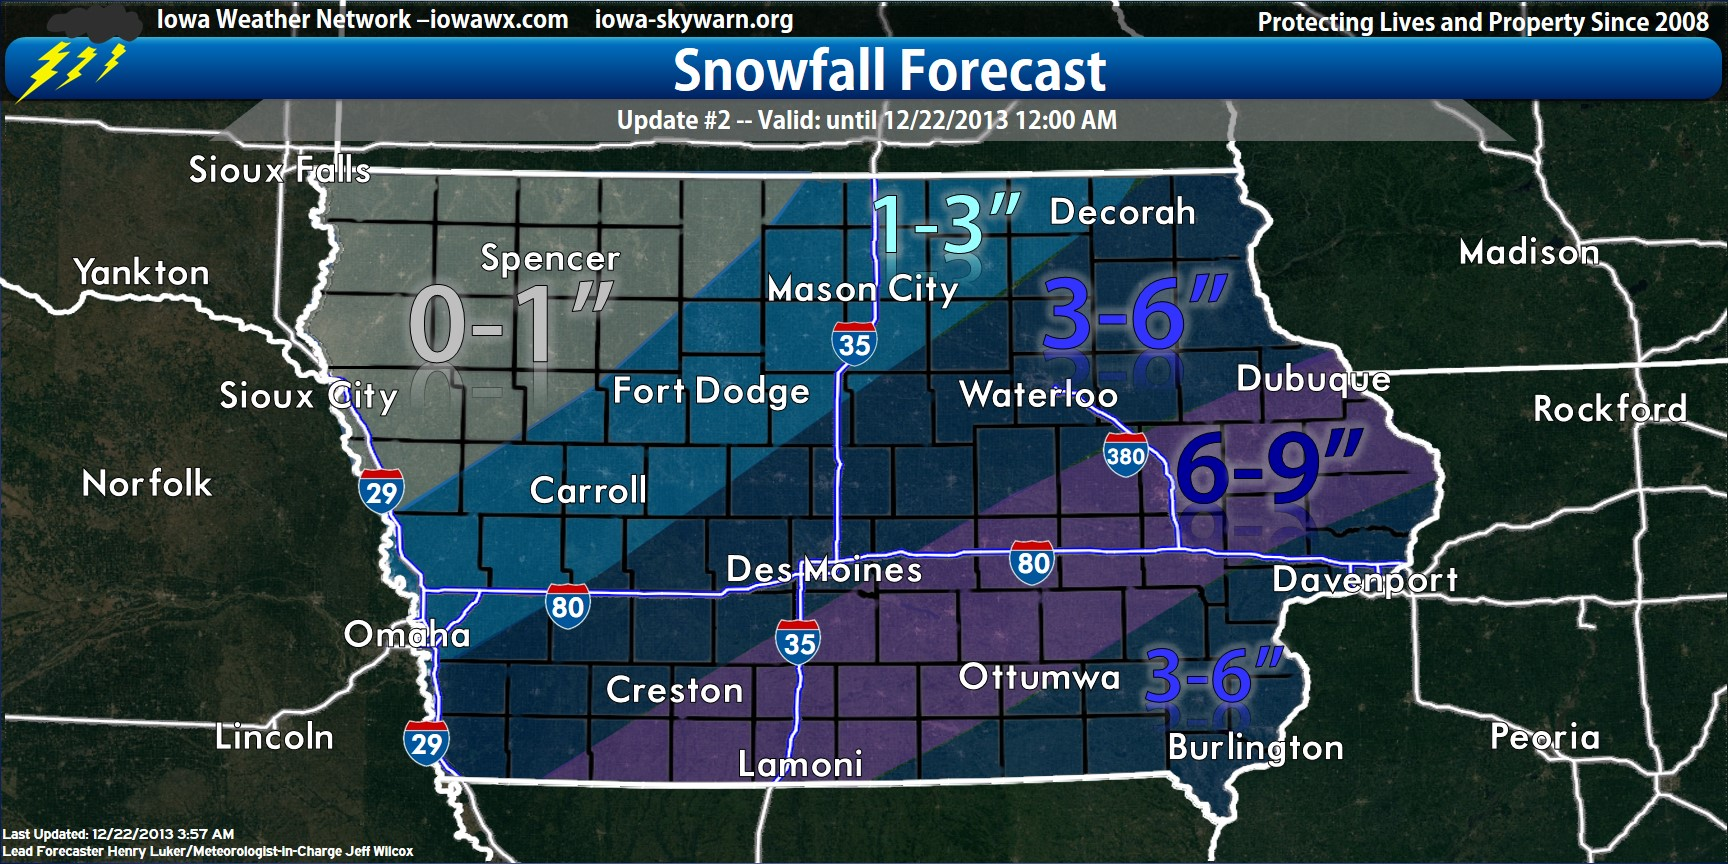 Iowa Winter Weather Predictions Dec 2013 Southeeast Iowa